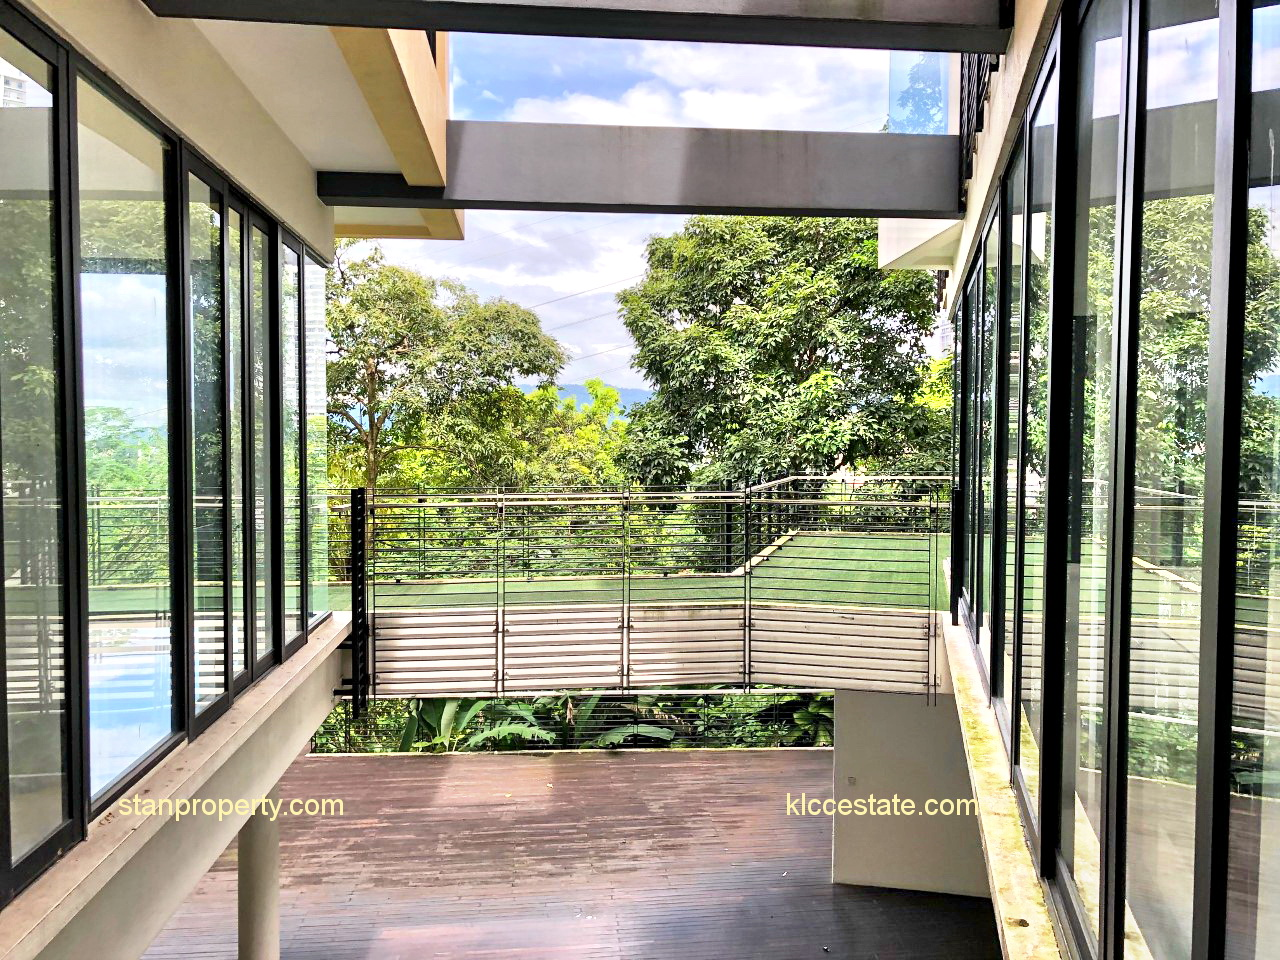 Country Heights Damansara Stunning Luxury Bungalow